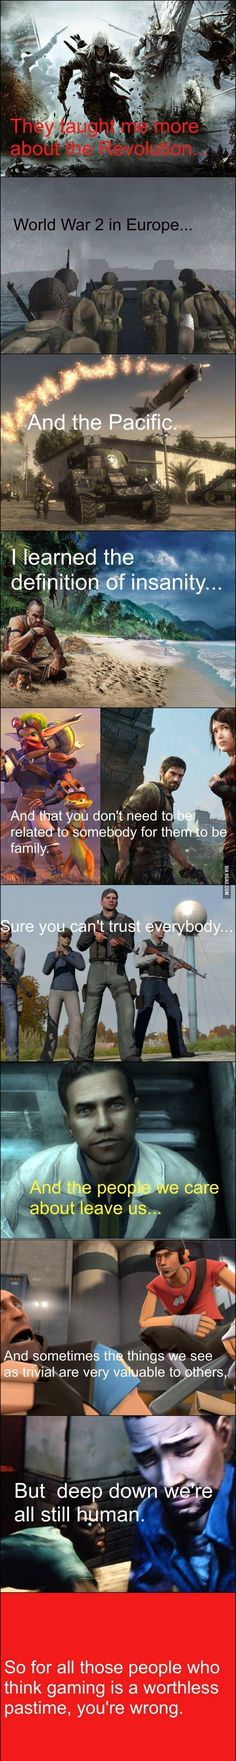 What video games have taught me.but where is uncharted that teaches you pretty much everything to do with love and family. Also Who hasn't learned something from video games? Video Game Quotes, Video Game Logic, Video Games Funny, Funny Games, Funny Videos, King's Quest, Gamers, Gaming Memes, Gaming Facts